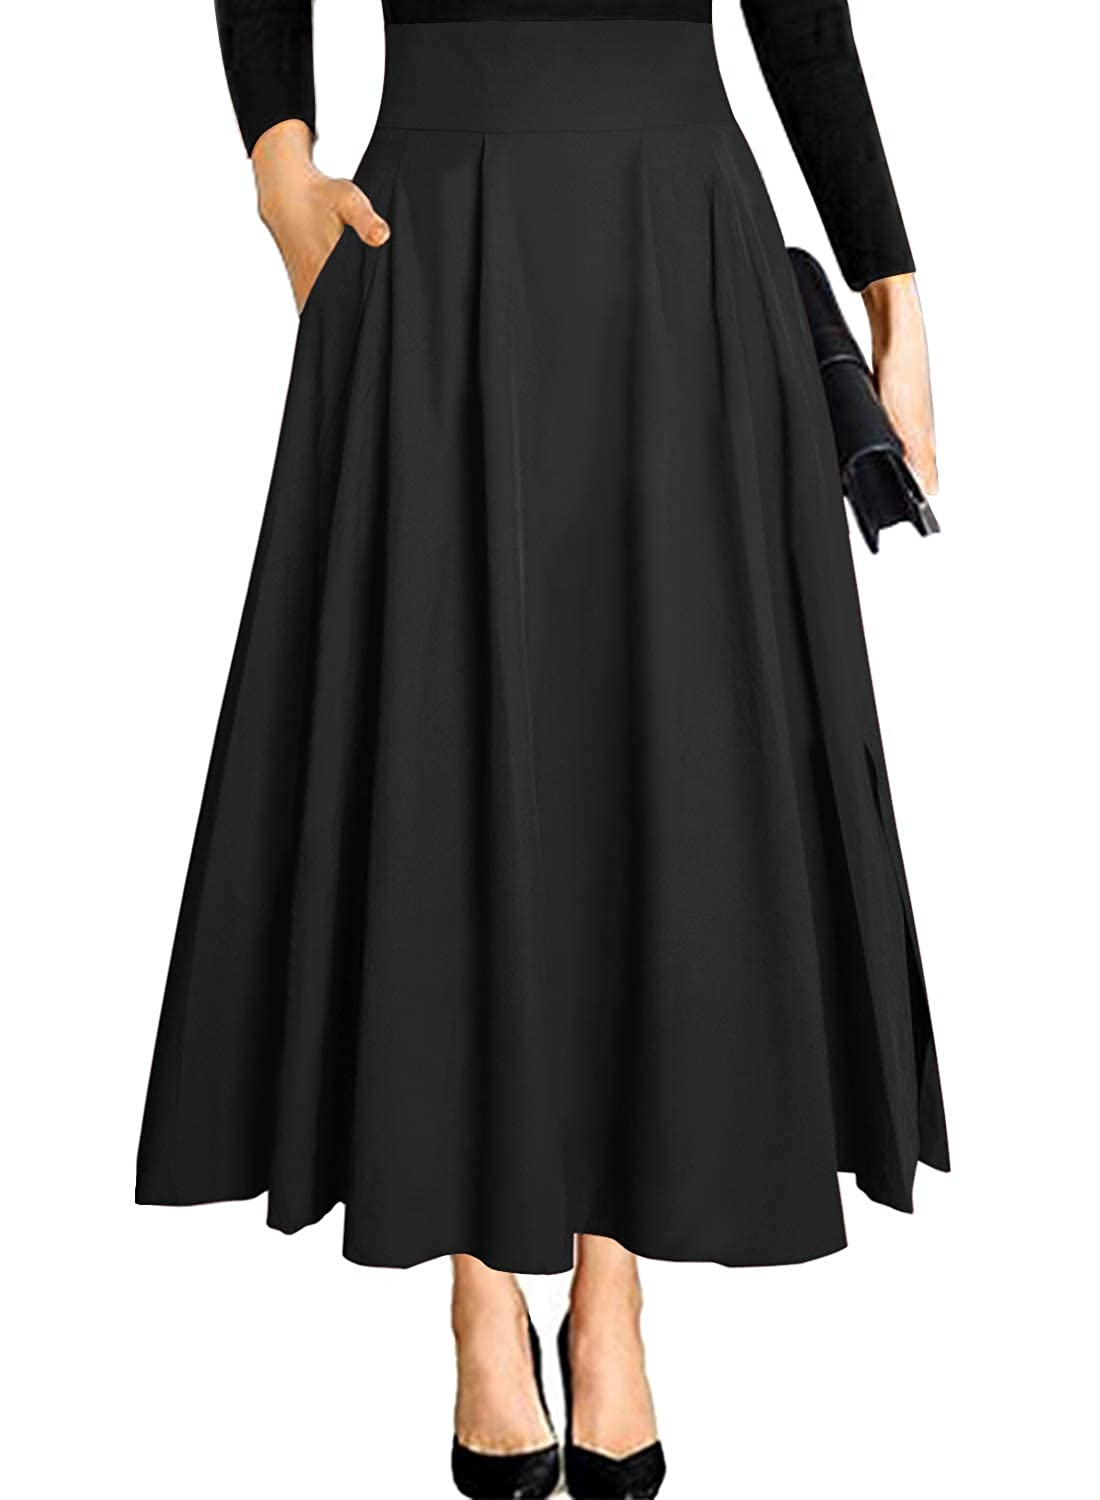 Retro Skirts: Vintage, Pencil, Circle, & Plus Sizes Ranphee Womens Ankle Length High Waist A-line Flowy Long Maxi Skirt with Pockets $25.99 AT vintagedancer.com